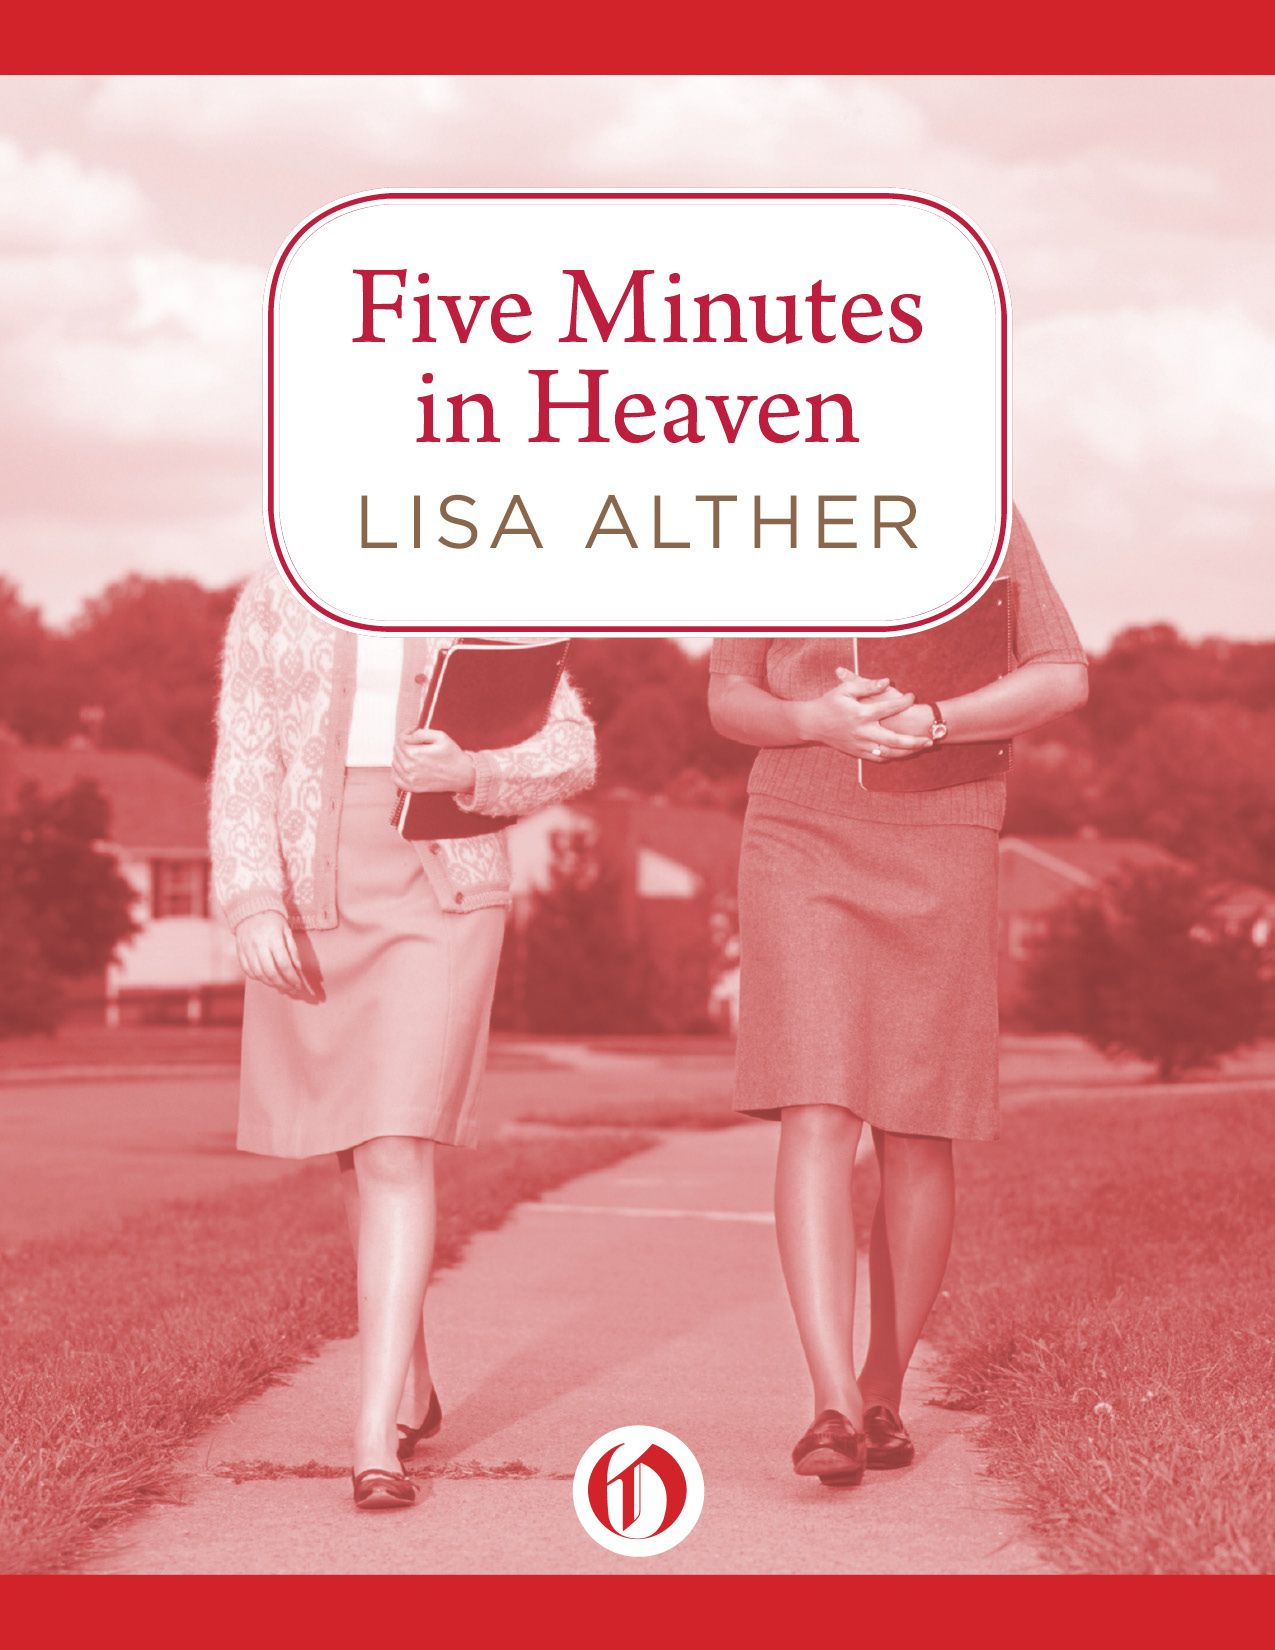 Five Minutes in Heaven